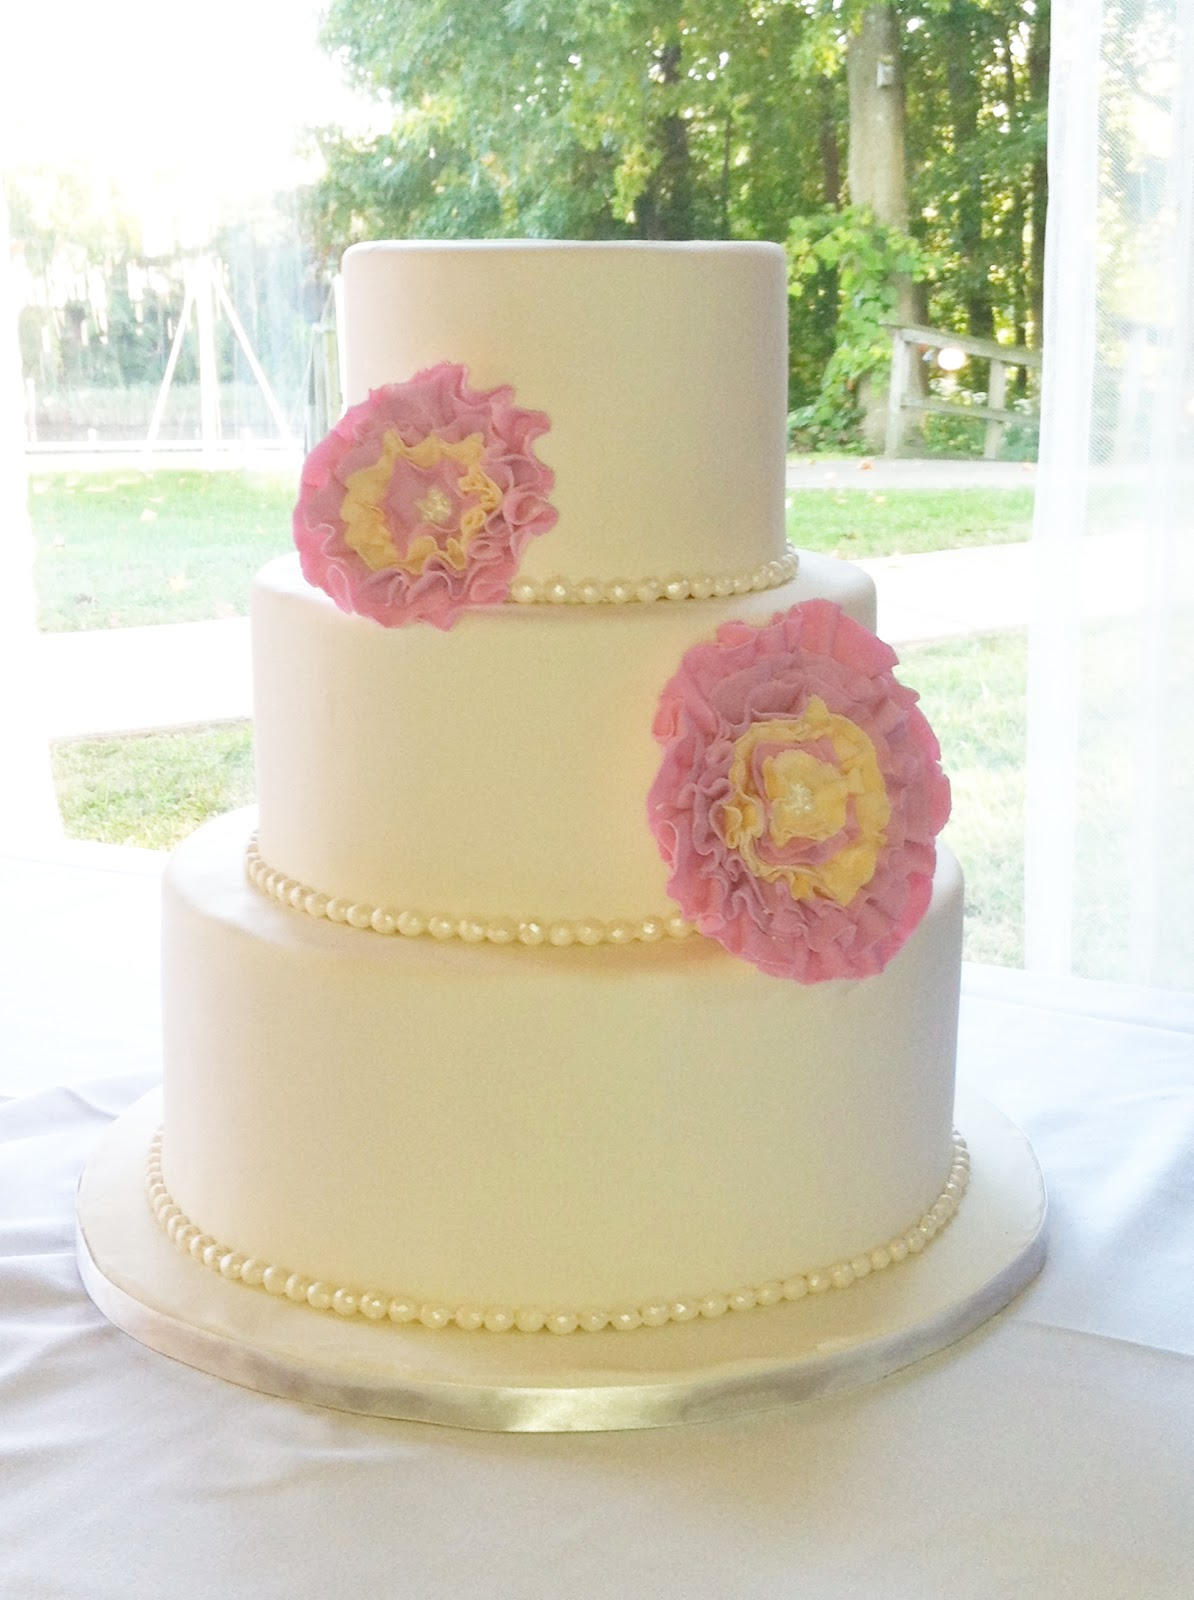 Sweet Eats Cakes: Recent Wedding Cakes